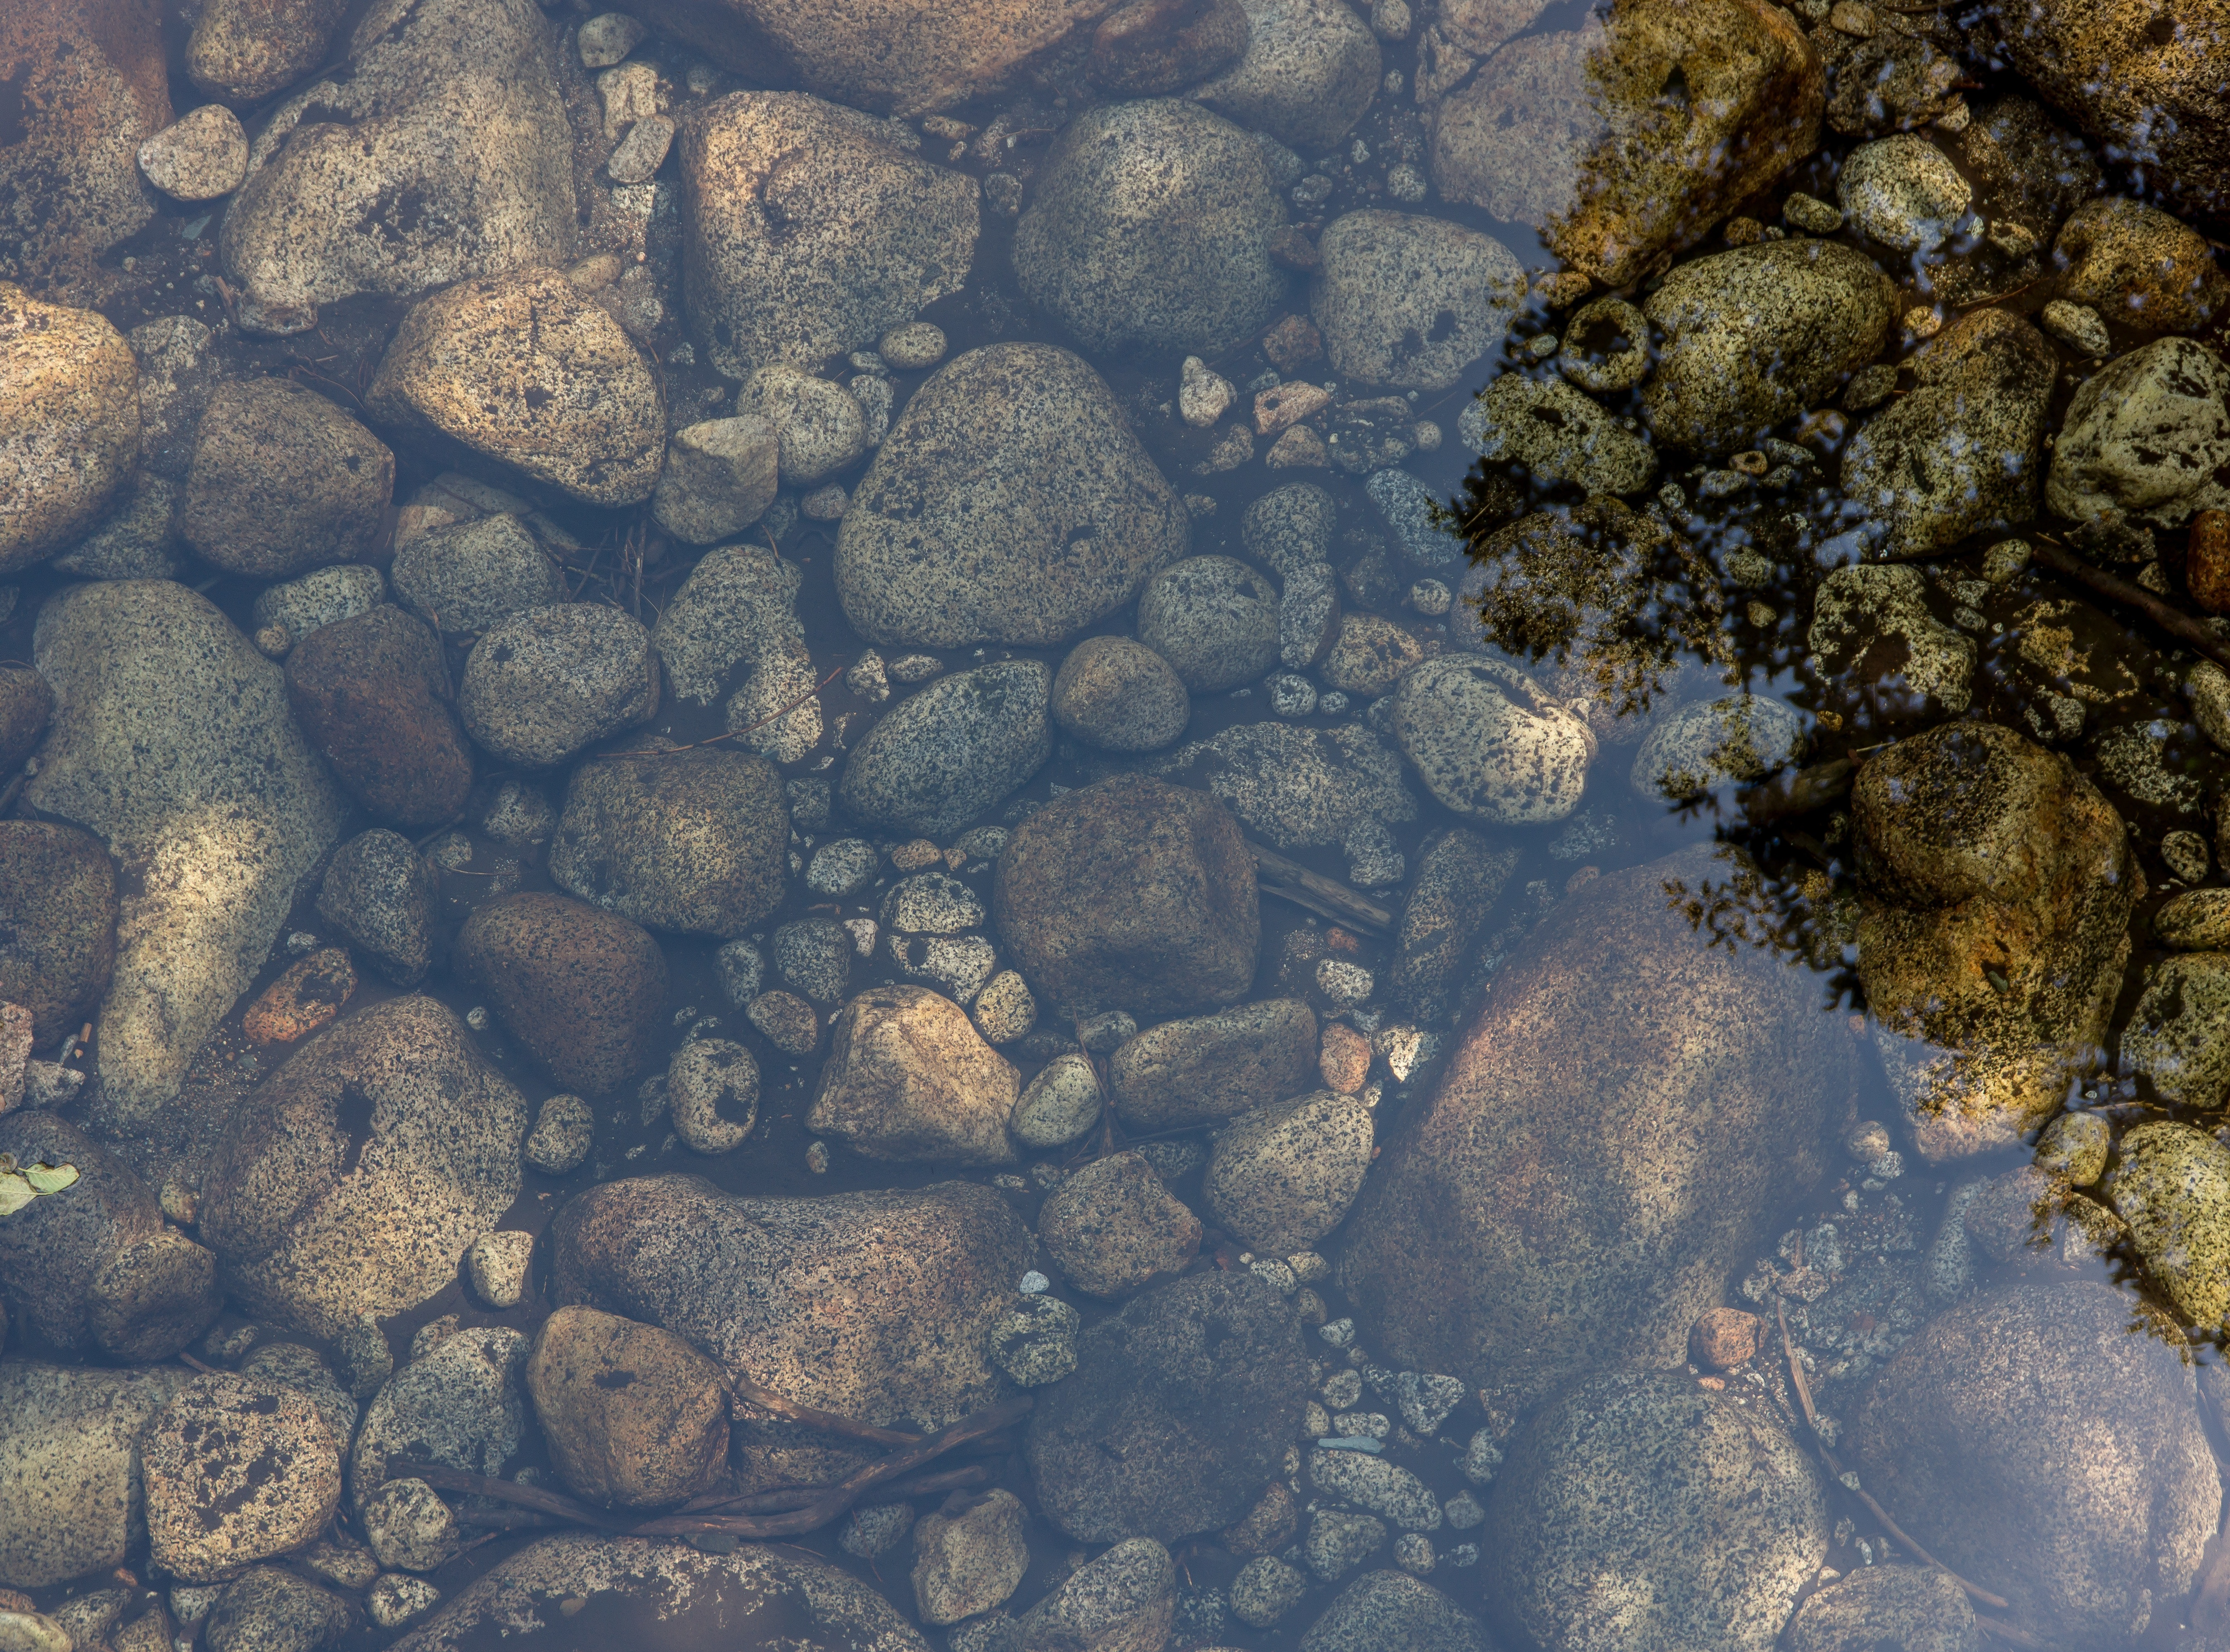 Crystal clear water and rocks, rocks, water, transparent, clean water, rocks, stones, lake